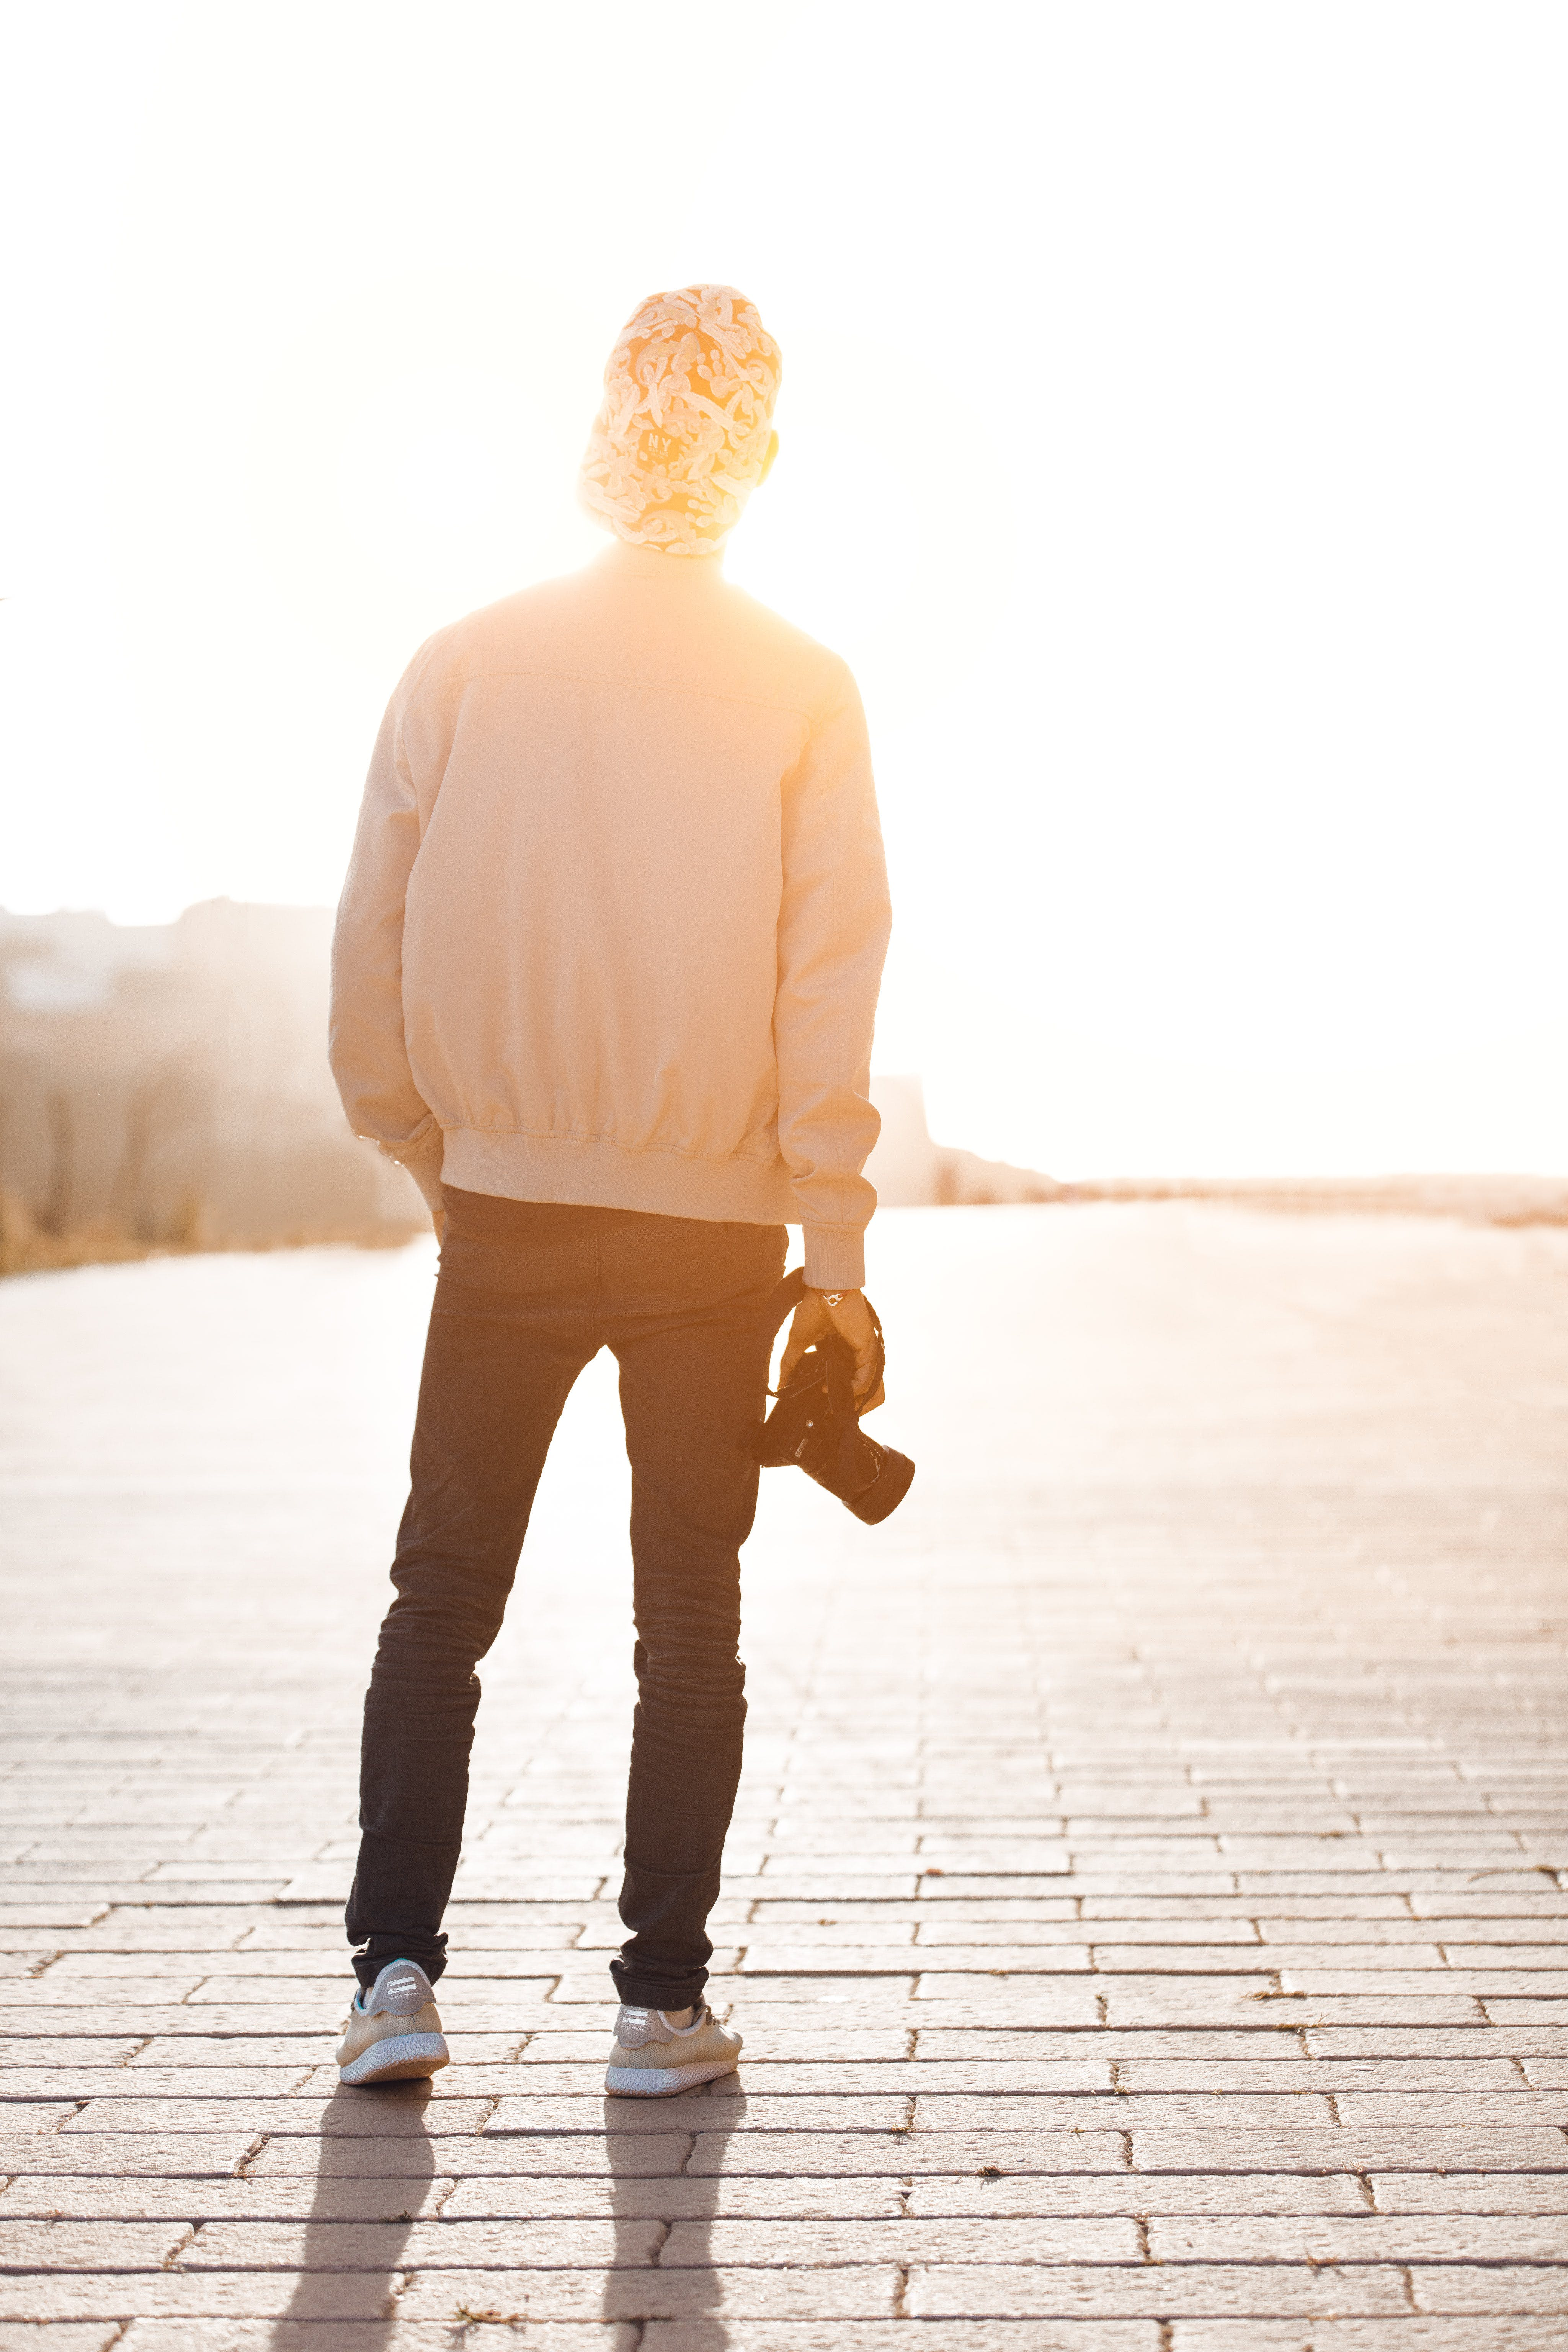 Boy Standing While Holding Camera Overlooking Sunlight at Daytime